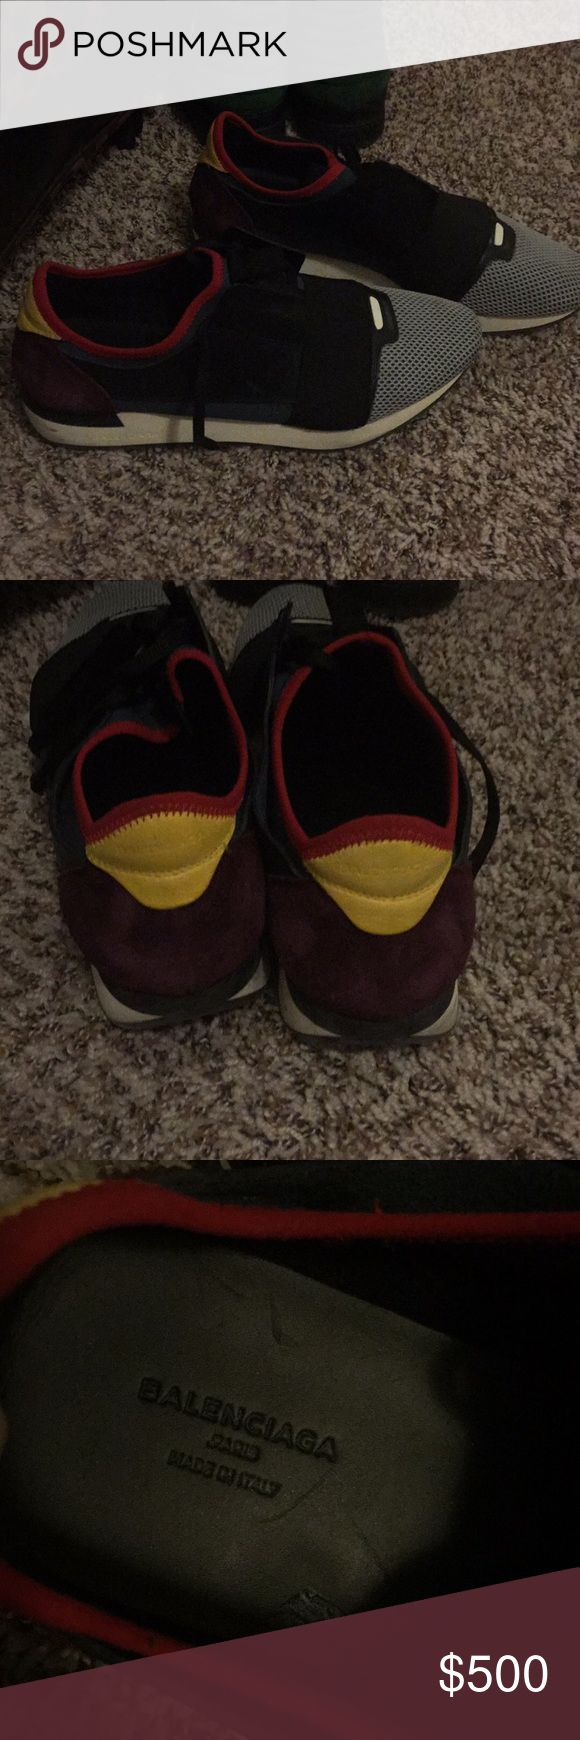 """Balenciaga Men's Authentic Balenciaga Men  Race Runners """"Slip On Sneakers"""" Made  in Italy  Used  Without box Good condition Color : Multi Color  Material : Leather, Rubberized neoprene , Jersey & Mesh  Size:44 = US Size 11 Original $750  Please know your size final sale Balenciaga Shoes Sneakers"""